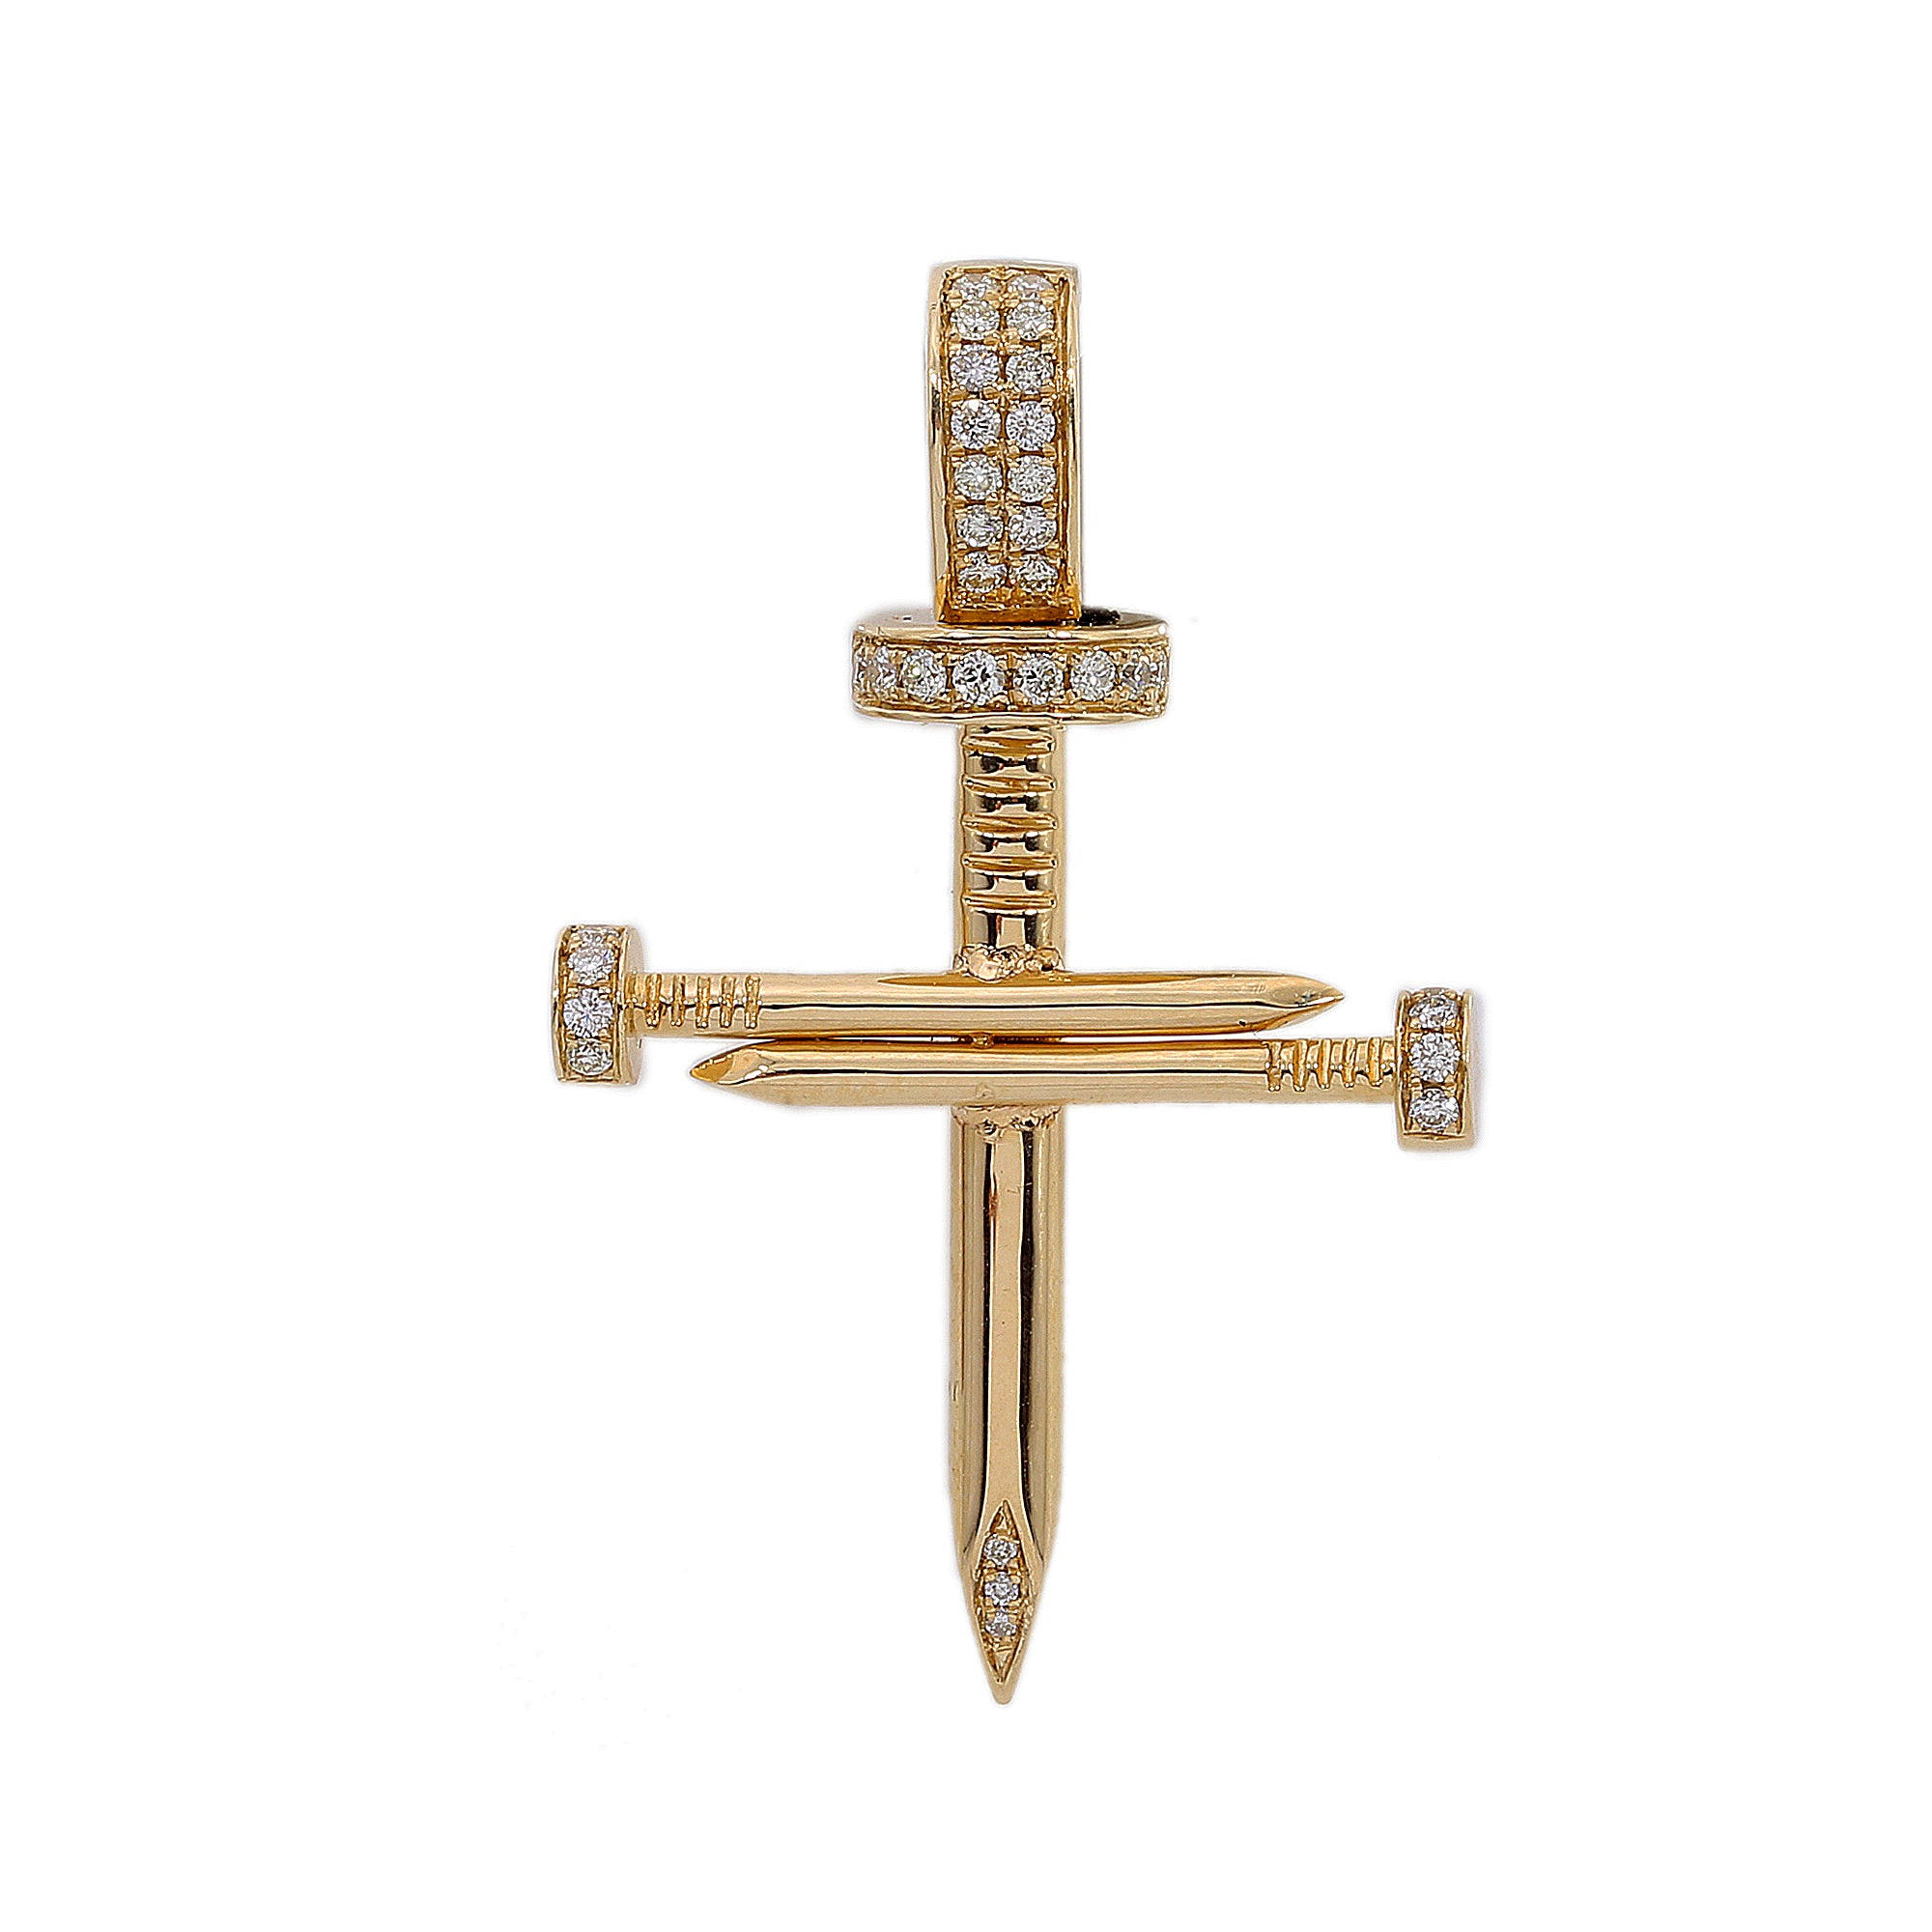 14K Yellow Gold Unisex Cross Shaped Pendant